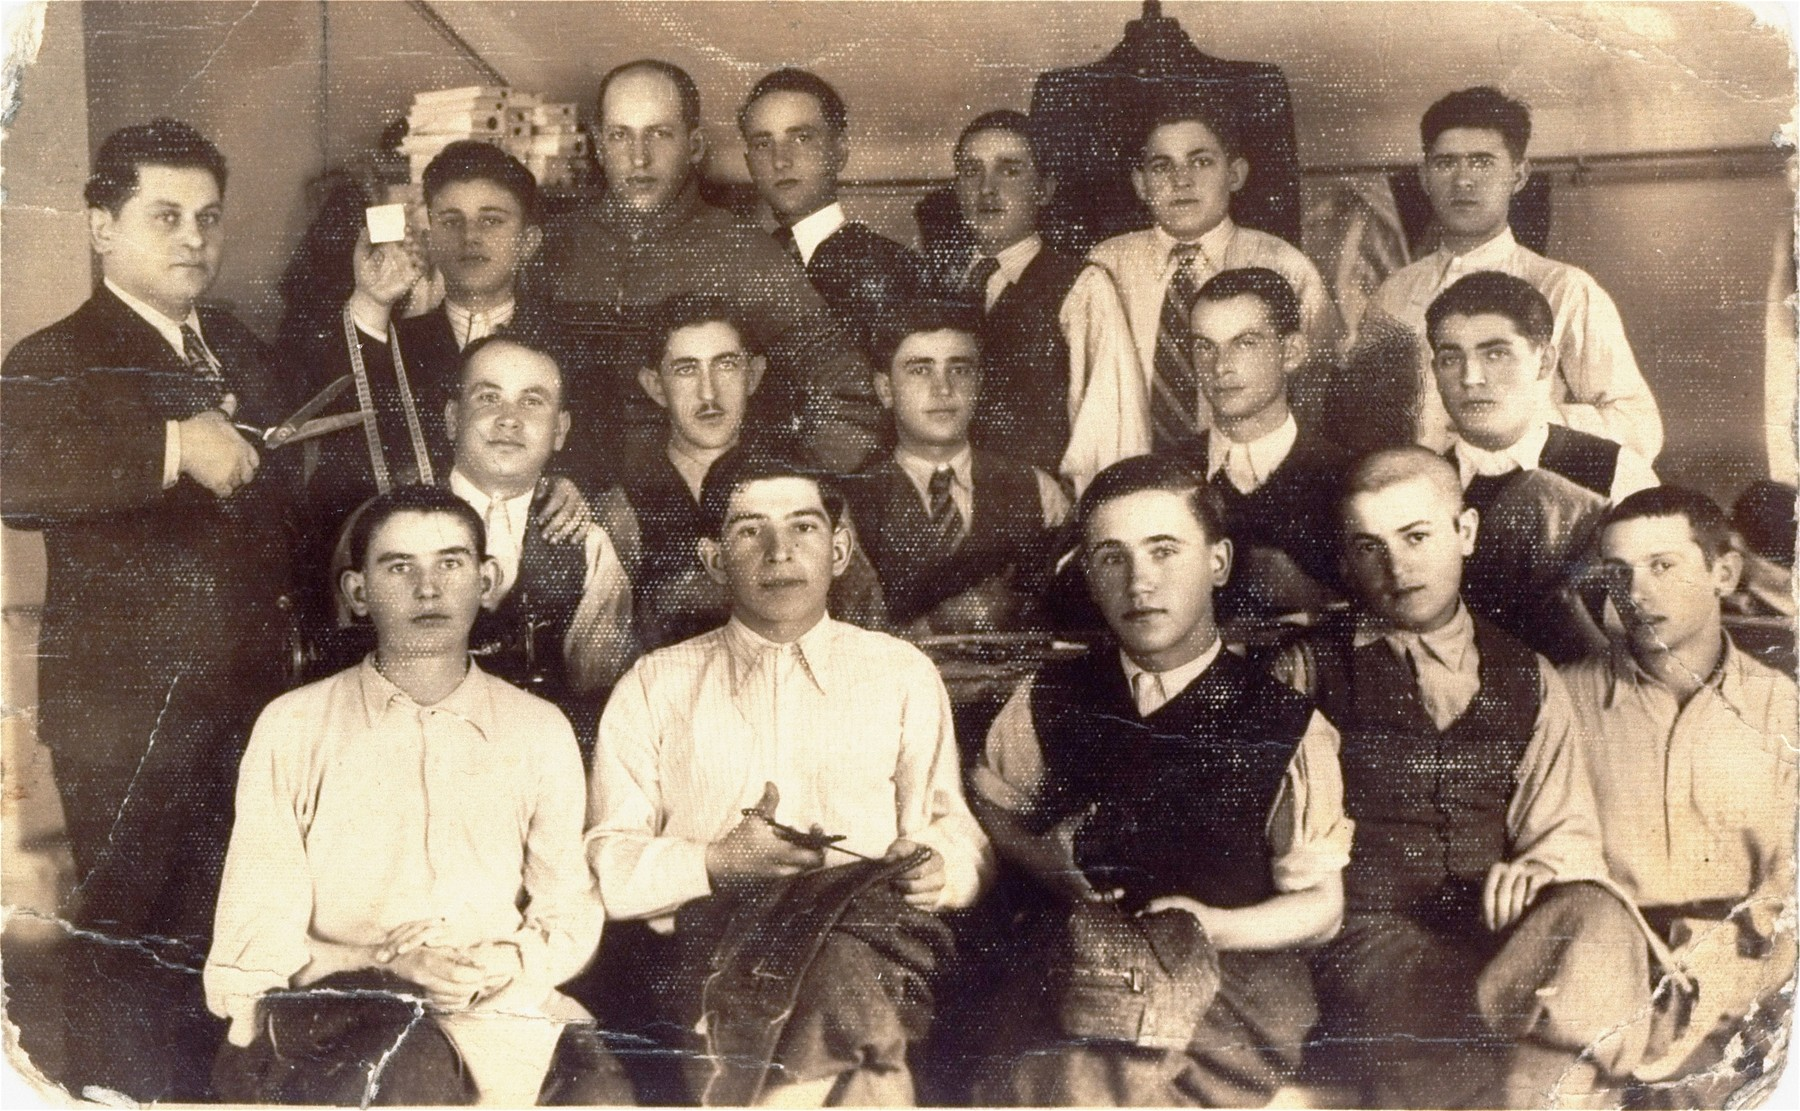 Abraham and Ludvic Ickovic pose with the employees of their garment factory, the Pansky a Damsky Krejci, in Tacovo.  Abraham Ickovic is pictured at the left holding a pair of scissors; Ludvic stands next to him.